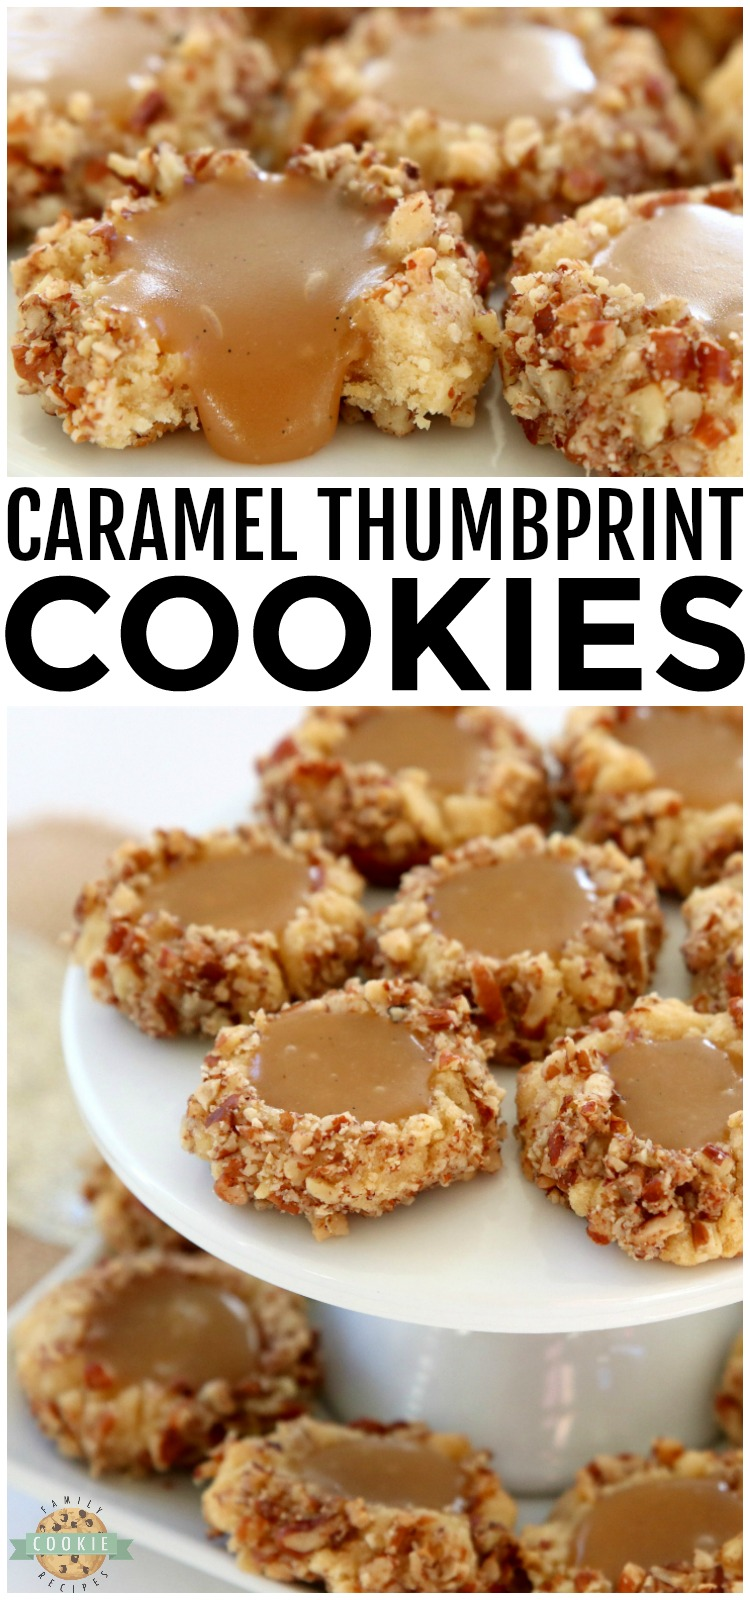 Caramel Thumbprint Cookies are a classic shortbread cookie rolled in pecans, baked & filled with warm caramel. Buttery Christmas cookies that everyone loves seeing at holiday cookie exchanges! #caramel #thumbprintcookies #cookies #baking #dessert #Christmas #cookie #recipe from FAMILY COOKIE RECIPES